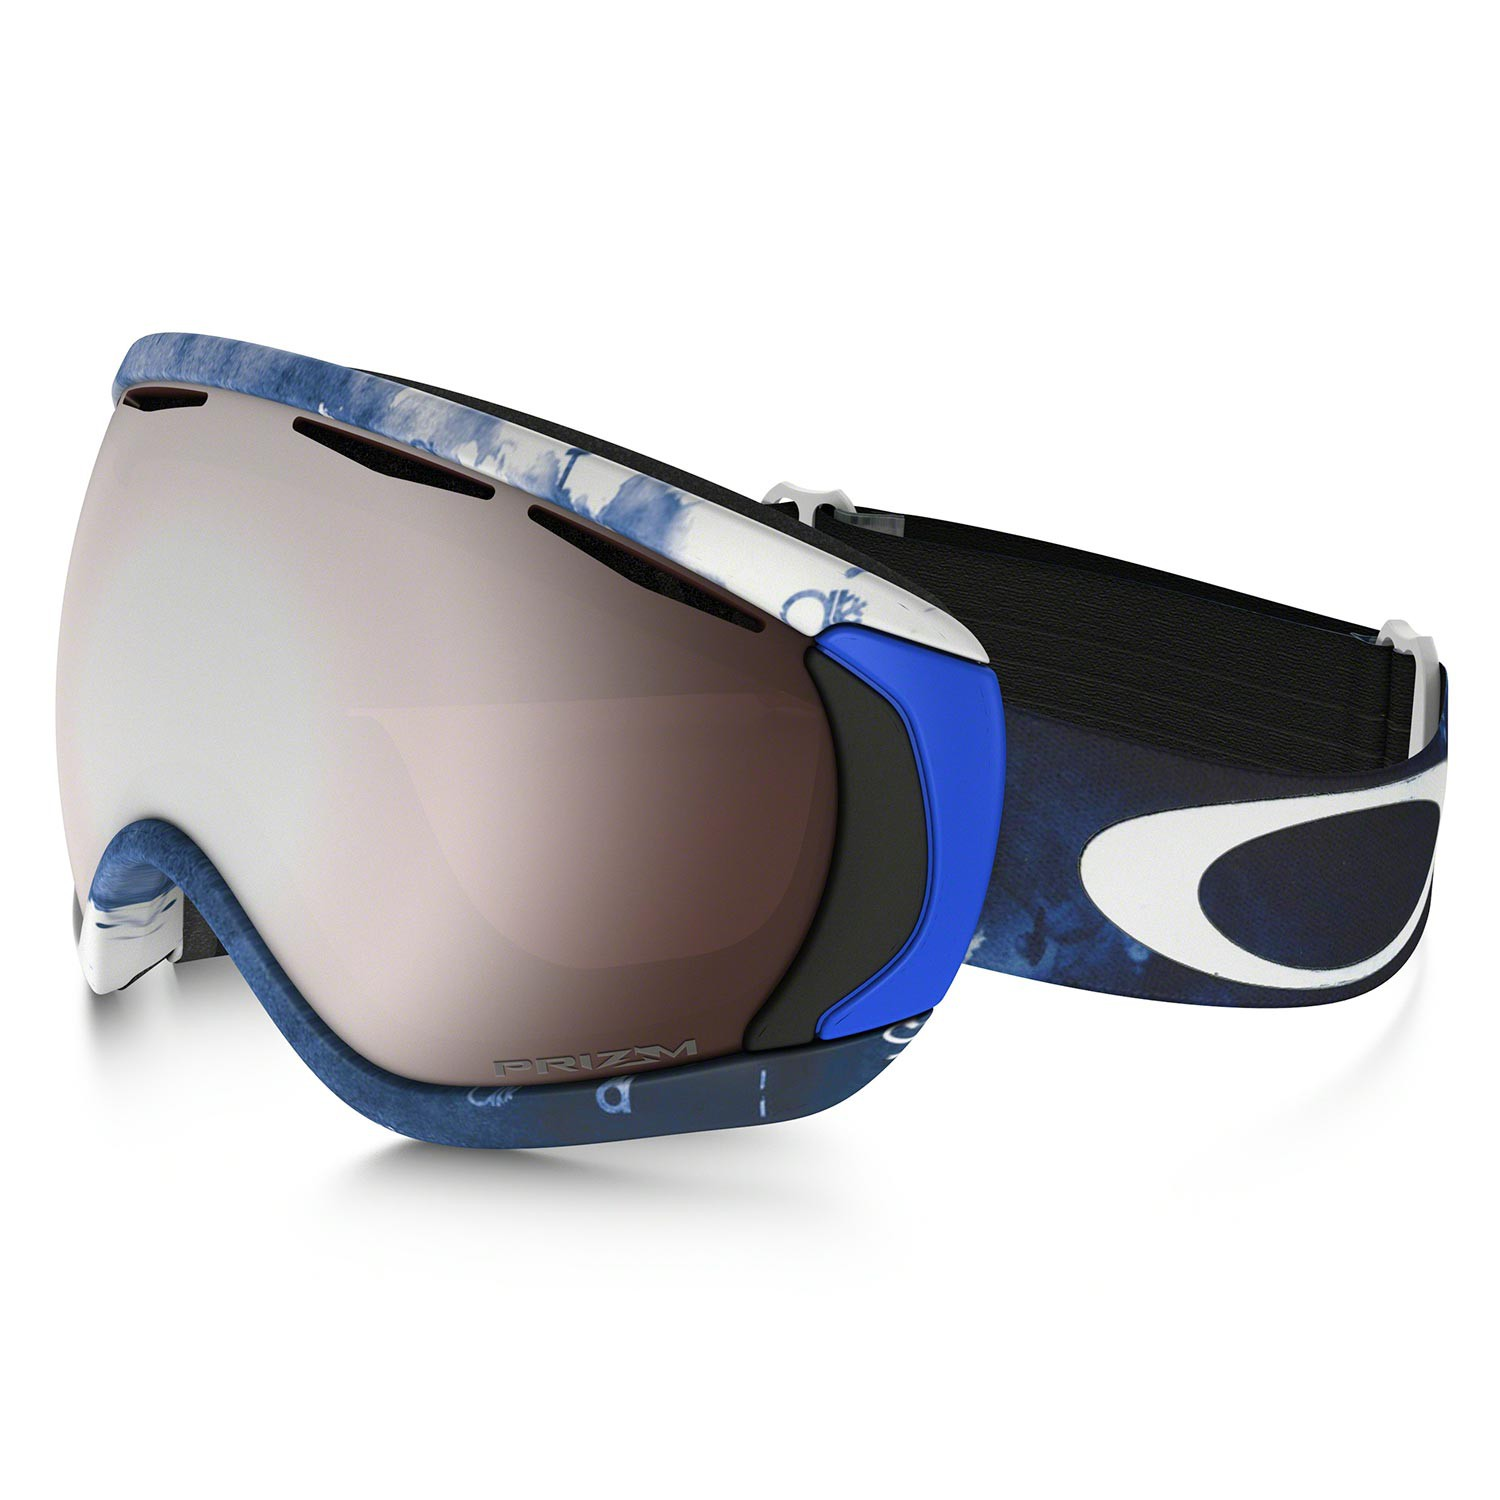 Brýle Oakley Canopy jp auclair whiteout